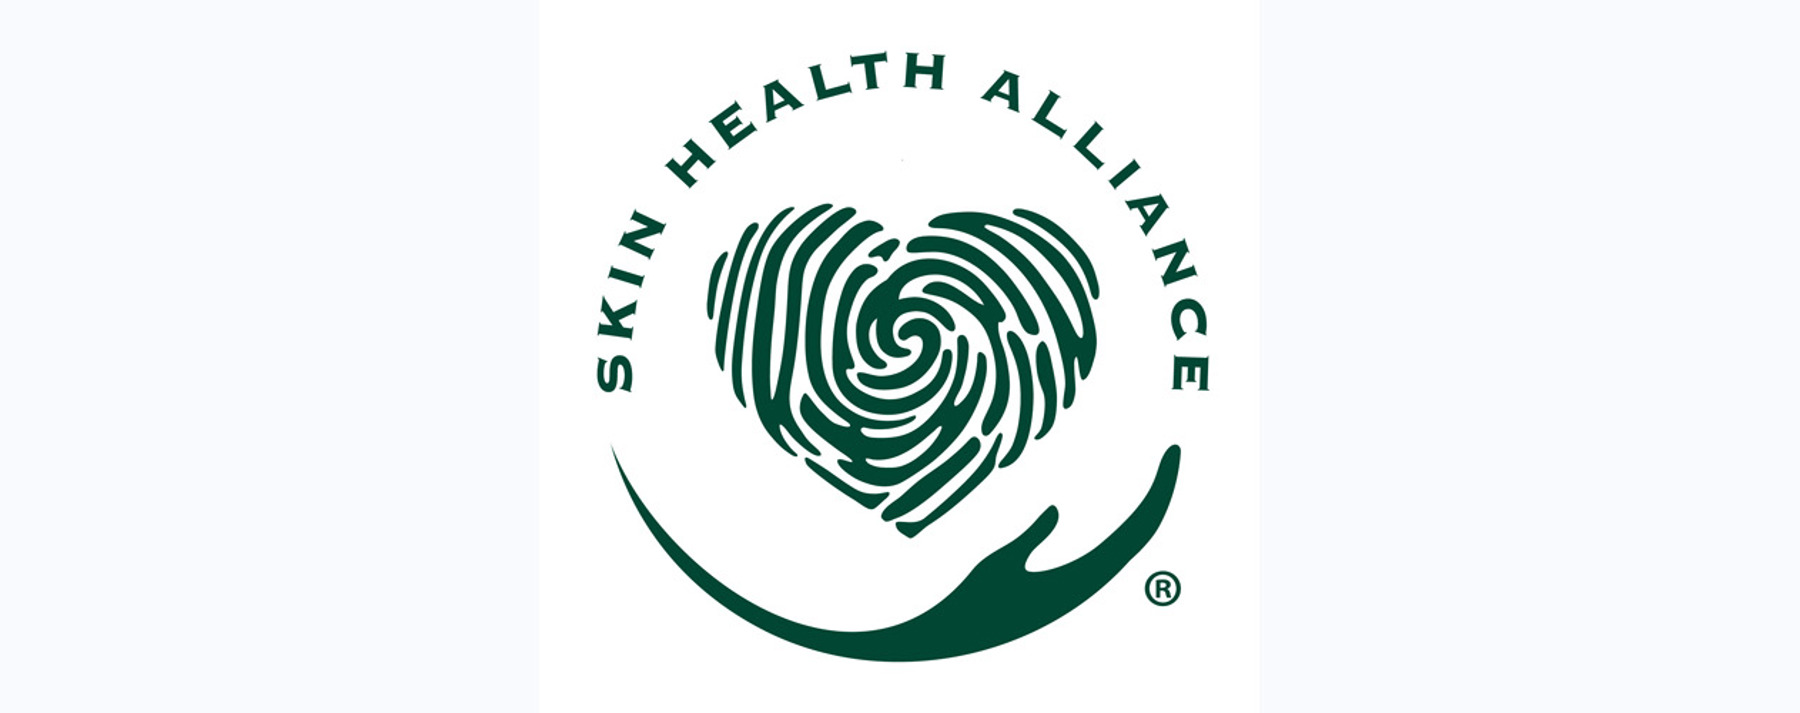 The Skin Health Alliance donates £190,000 to research